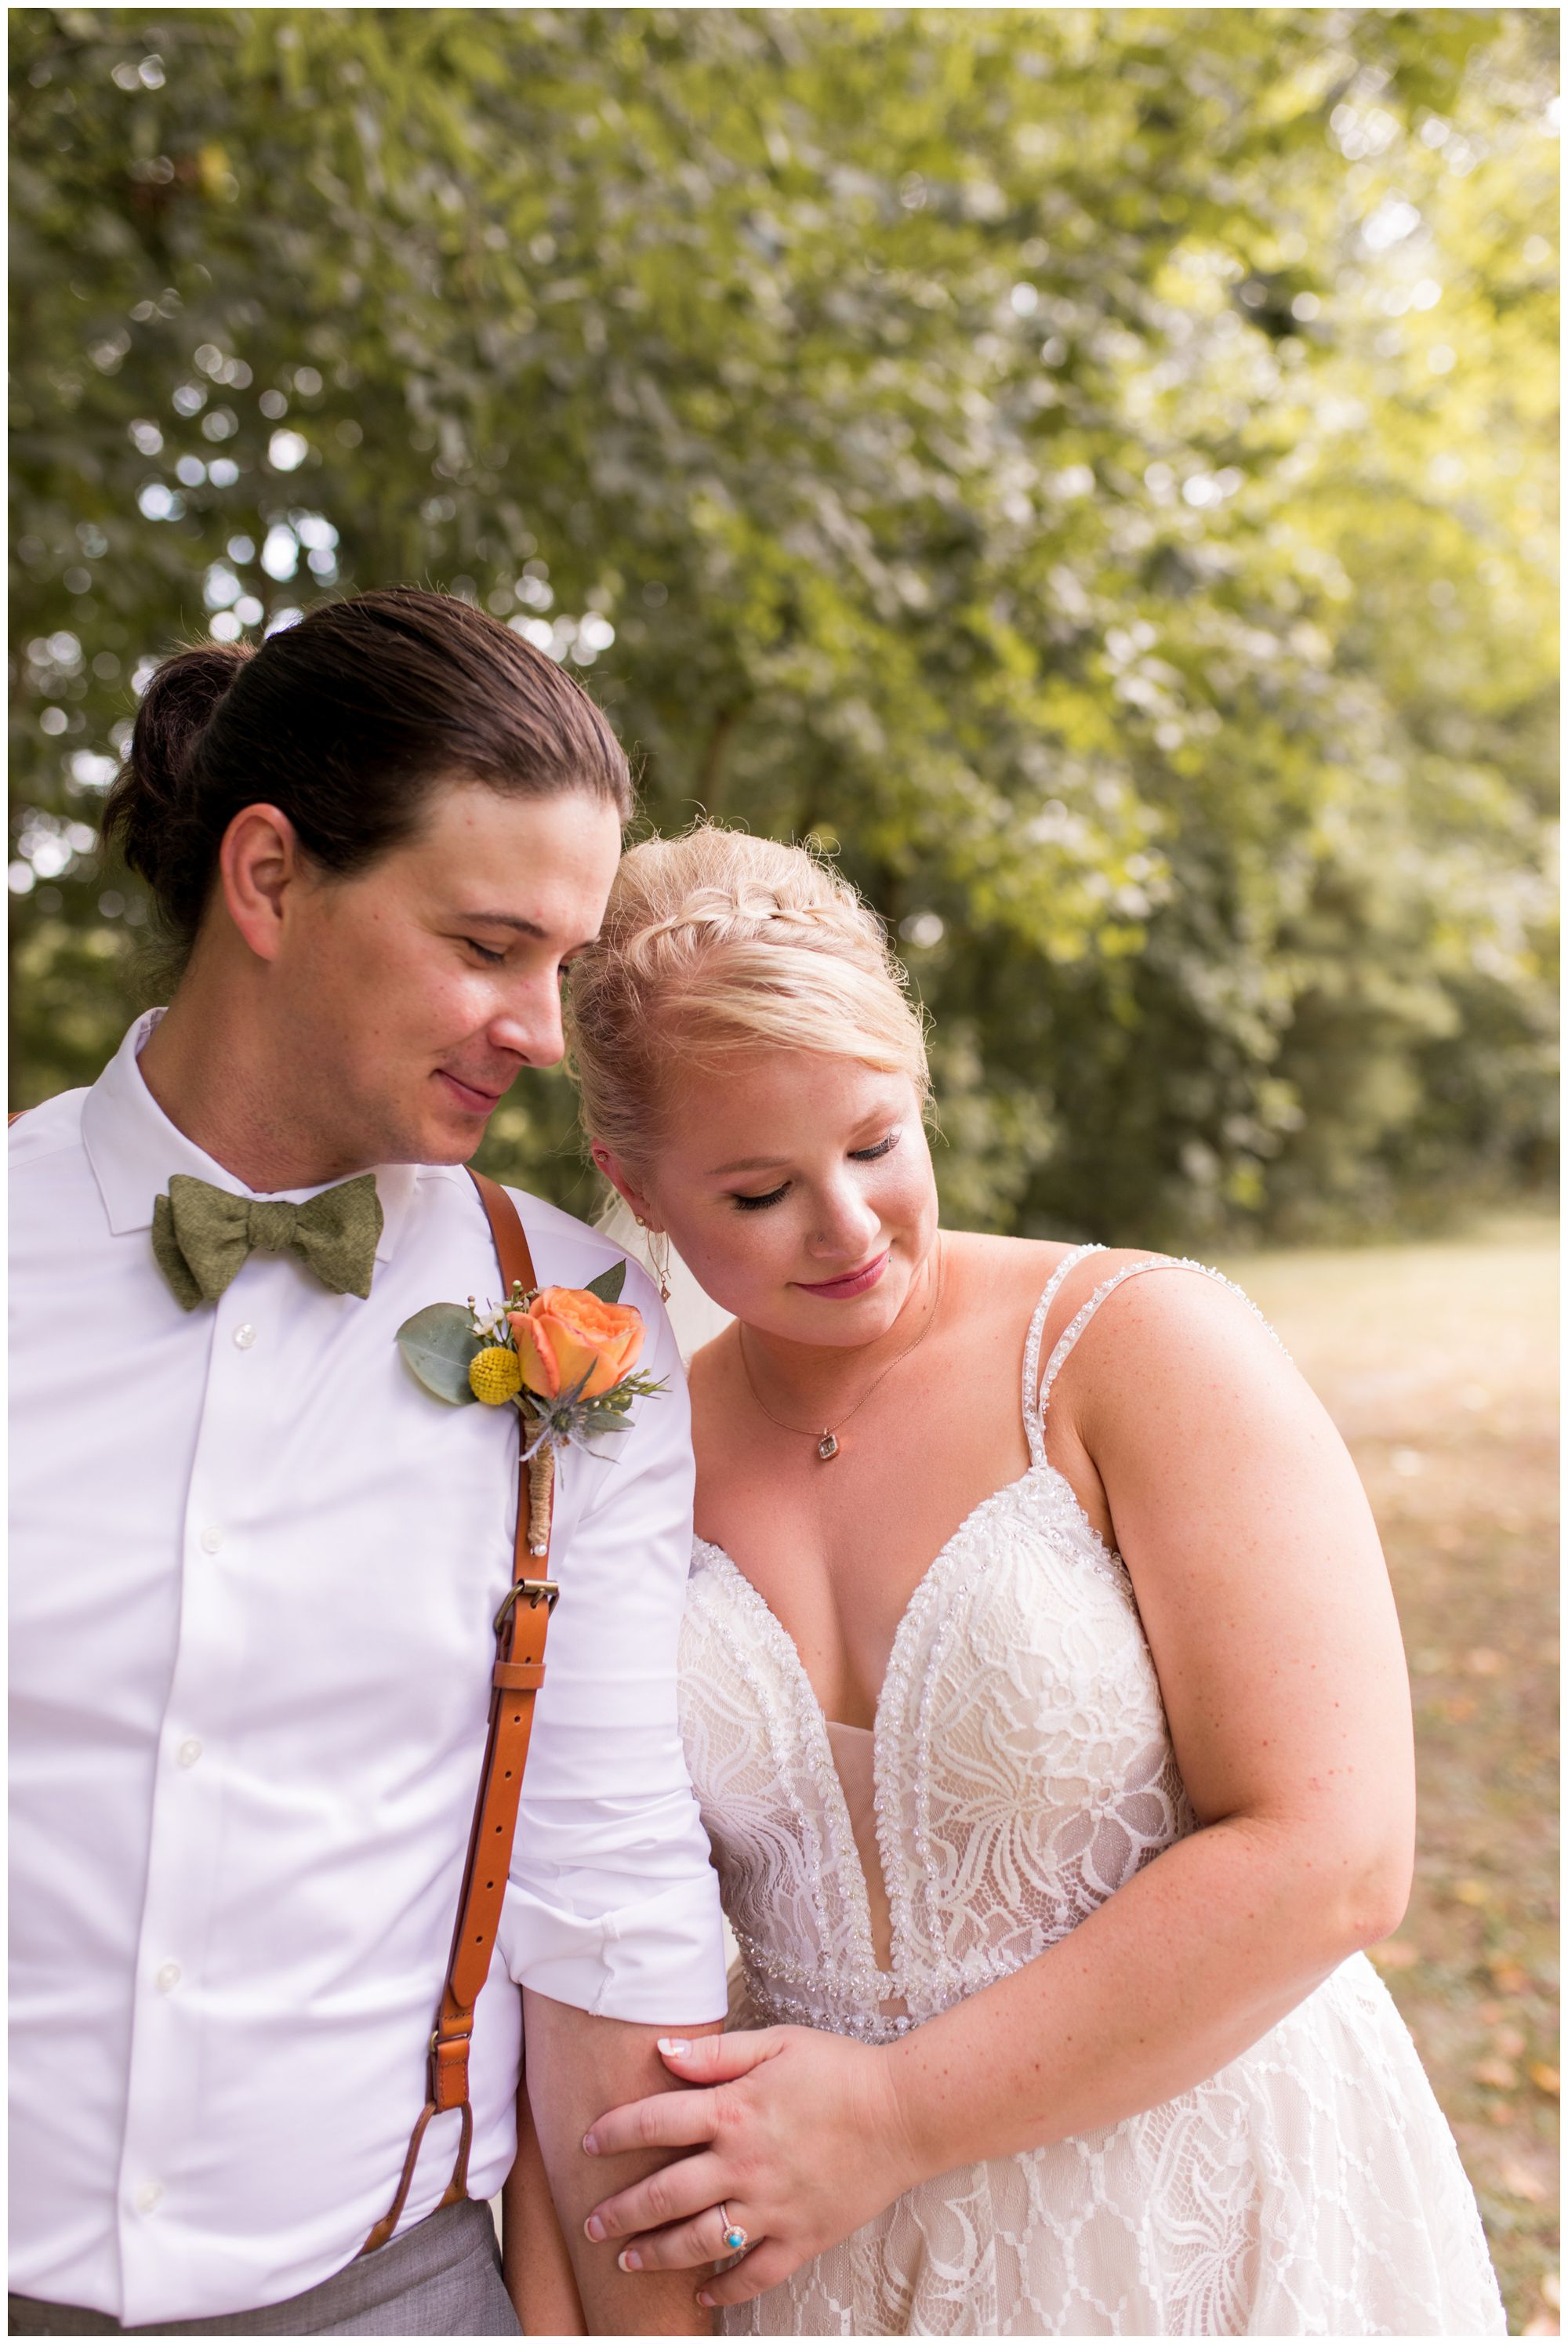 Forest Park wedding photos in Noblesville